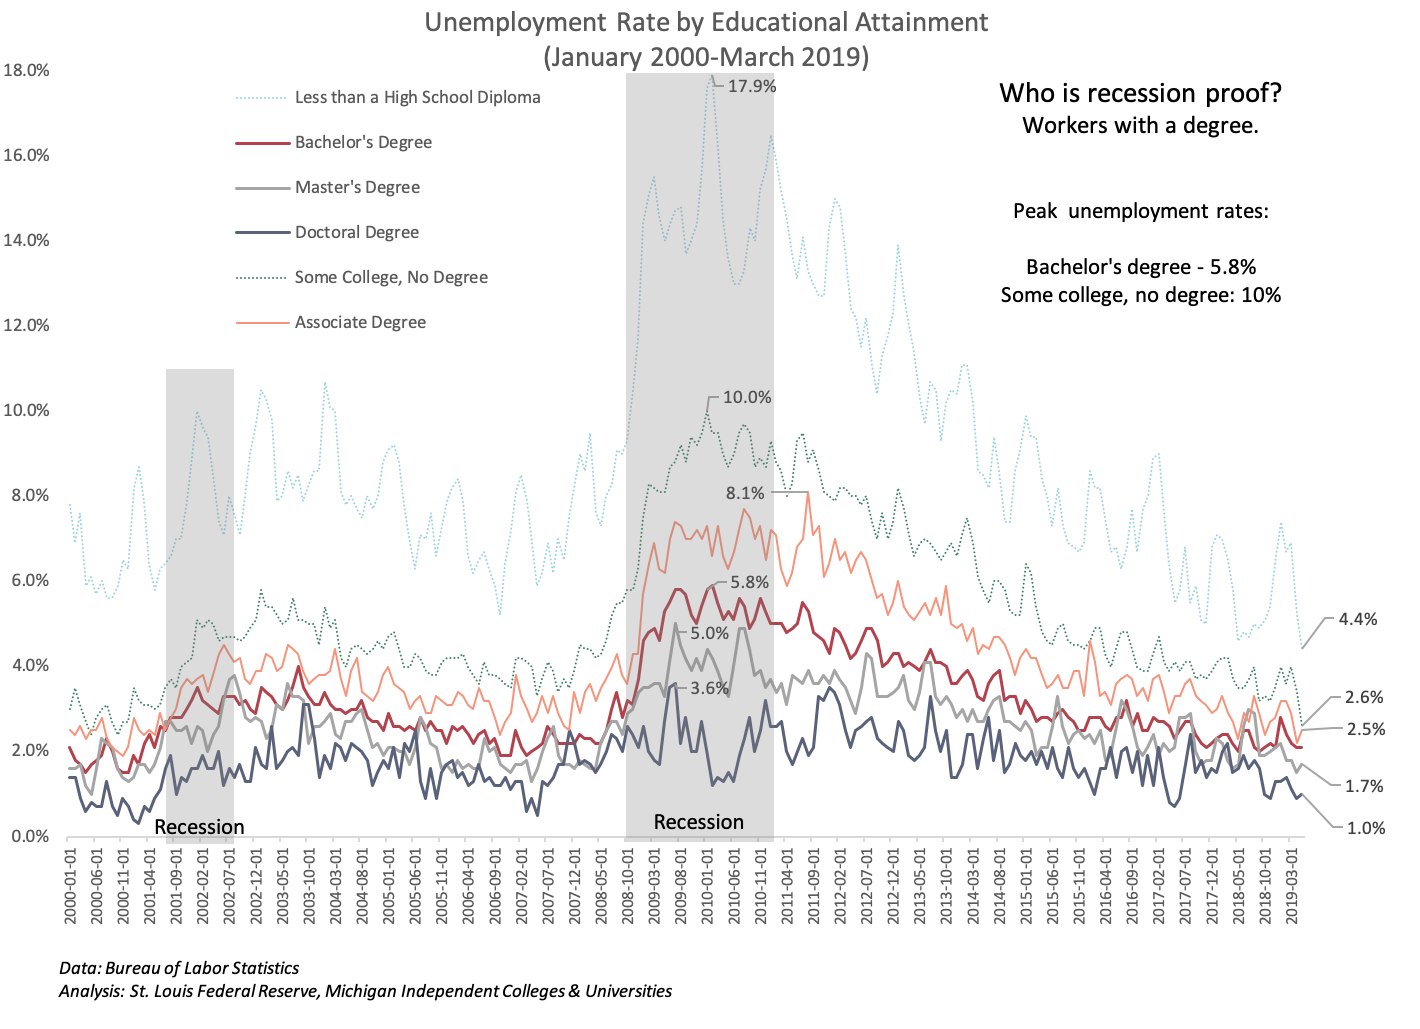 Unemployment by Ed attainment 2000-2019.png